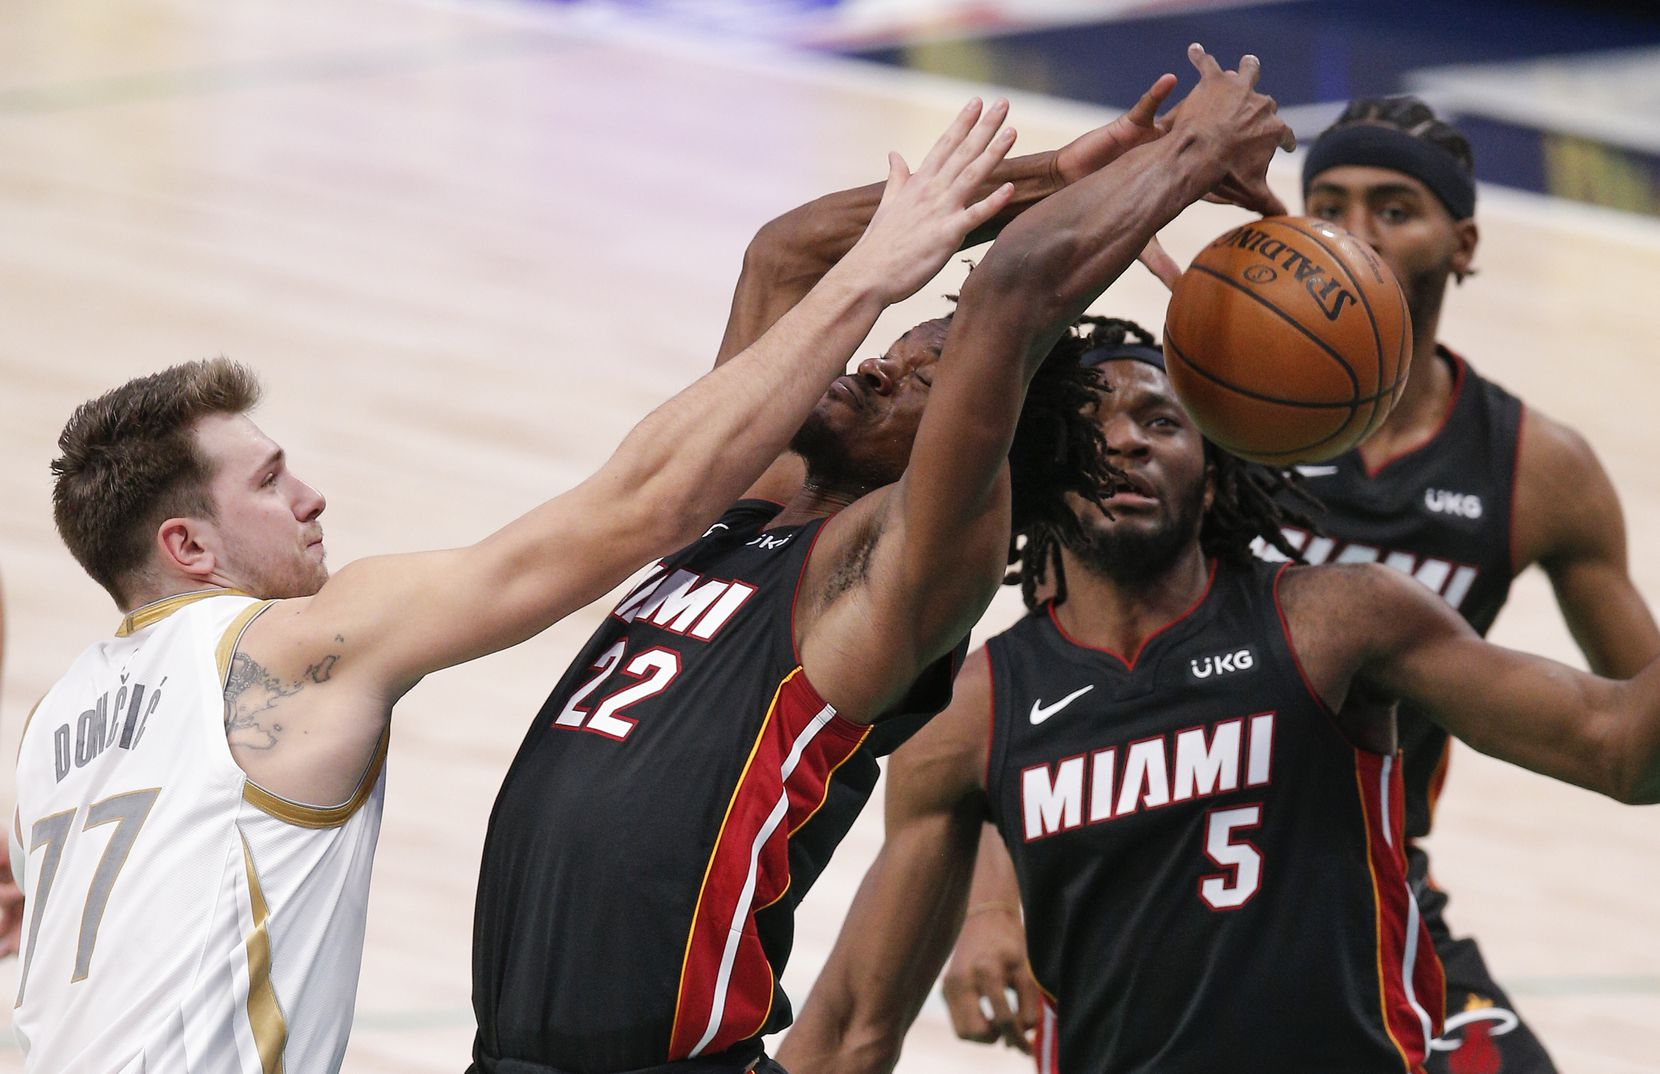 Dallas Mavericks guard Luka Doncic (77) battles Miami Heat forwards Jimmy Butler (22) and Precious Achiuwa (5) for the ball during the first half of an NBA basketball game, Friday, January 1, 2021. (Brandon Wade/Special Contributor)